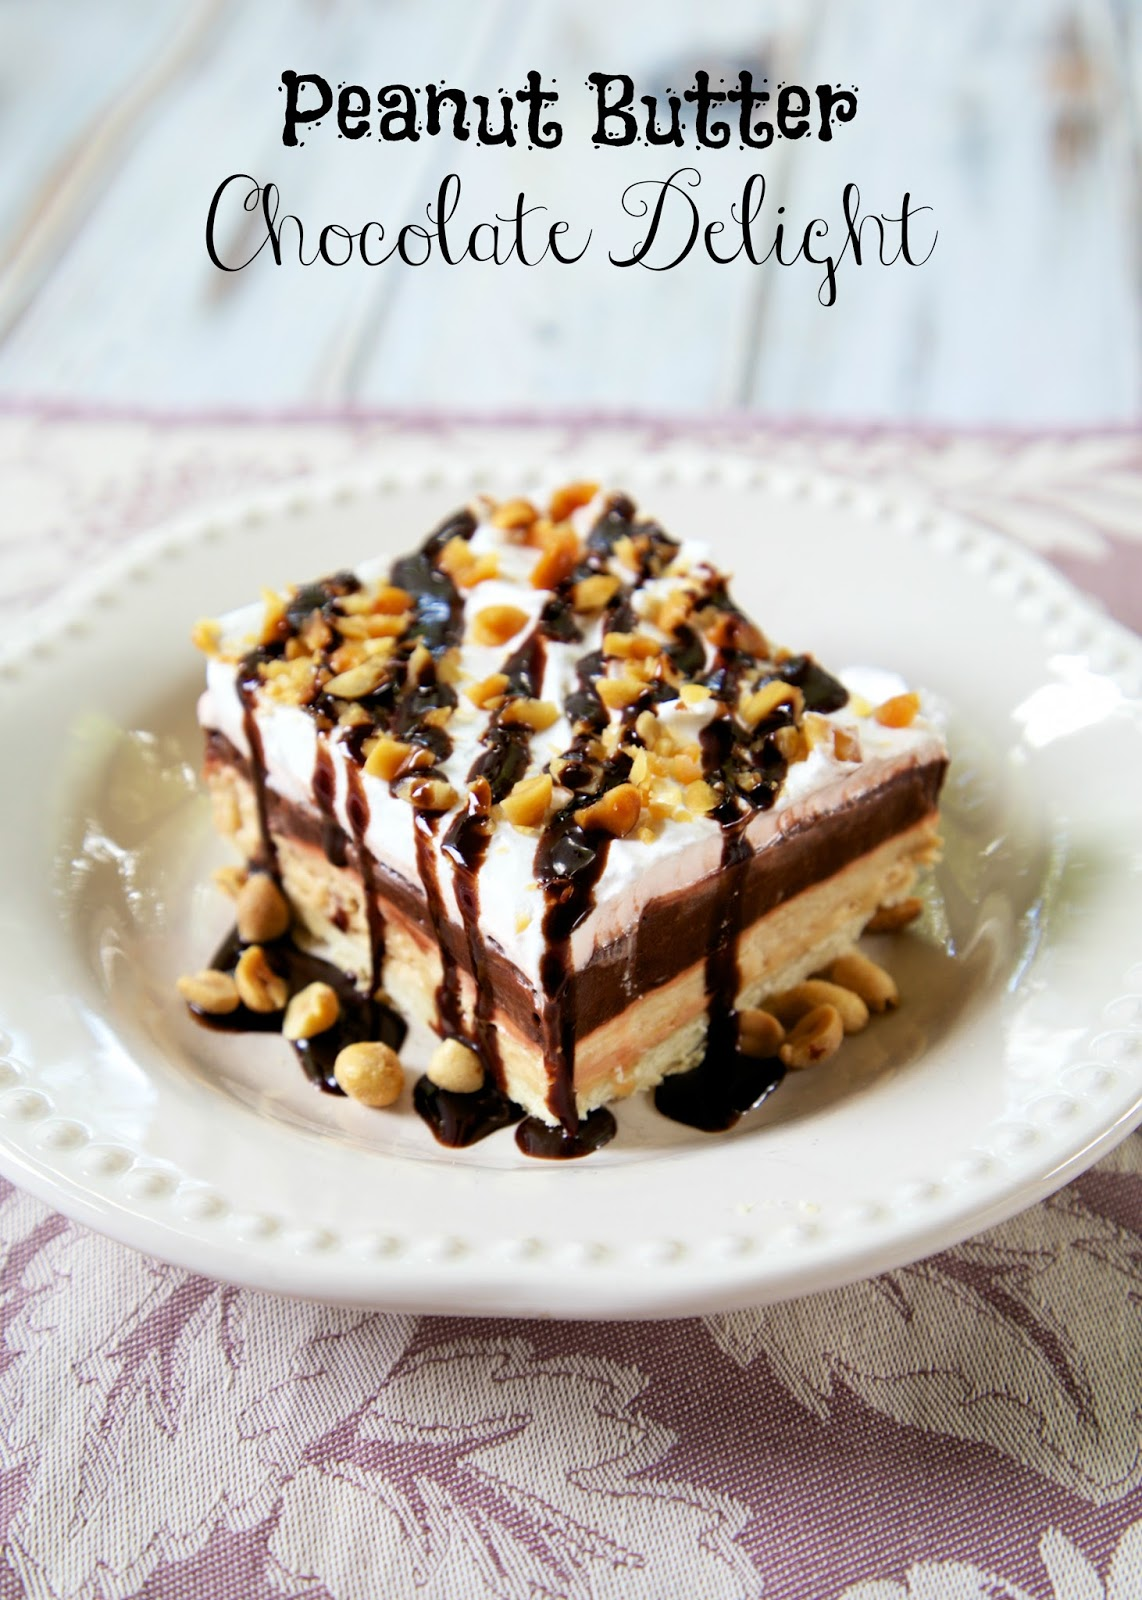 peanut butter chocolate delight dessert